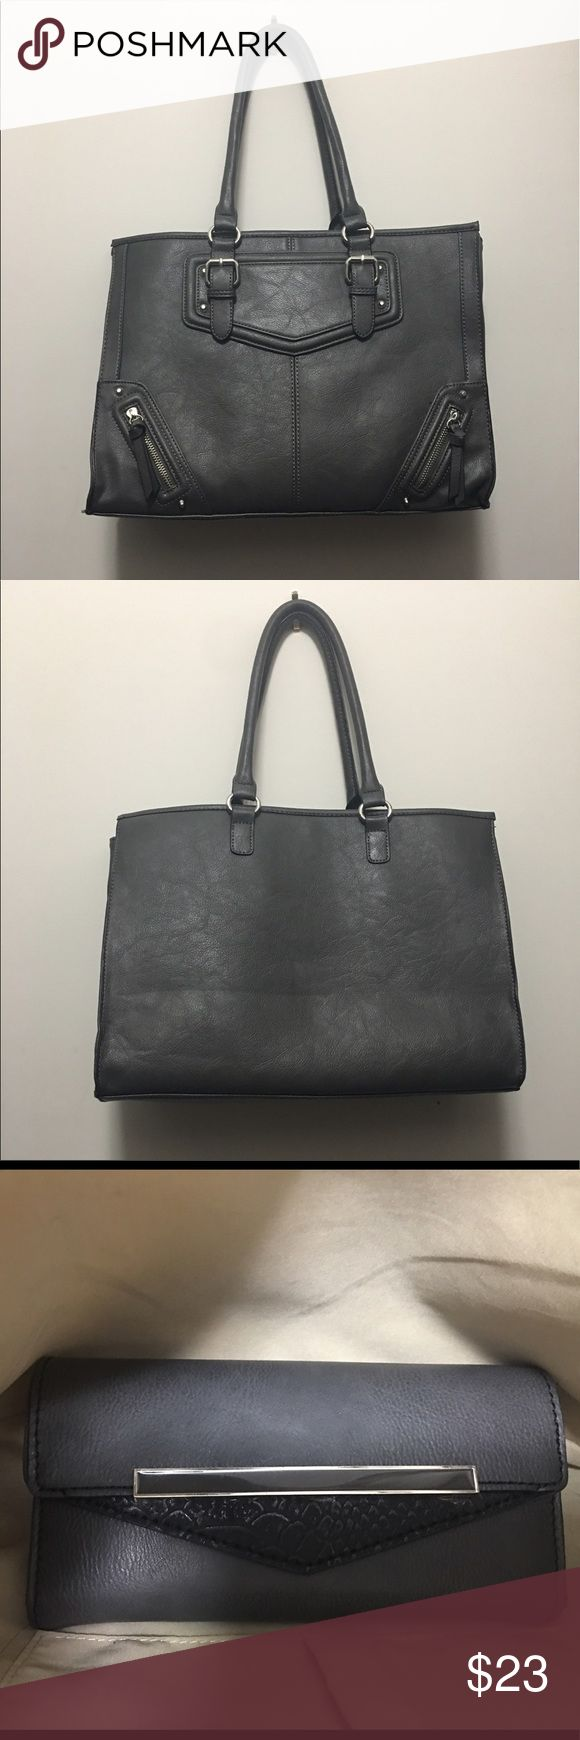 Aldo Tote Gray Aldo Tote Bag - with matching wallet // small stain on inside, see photo Aldo Bags Totes